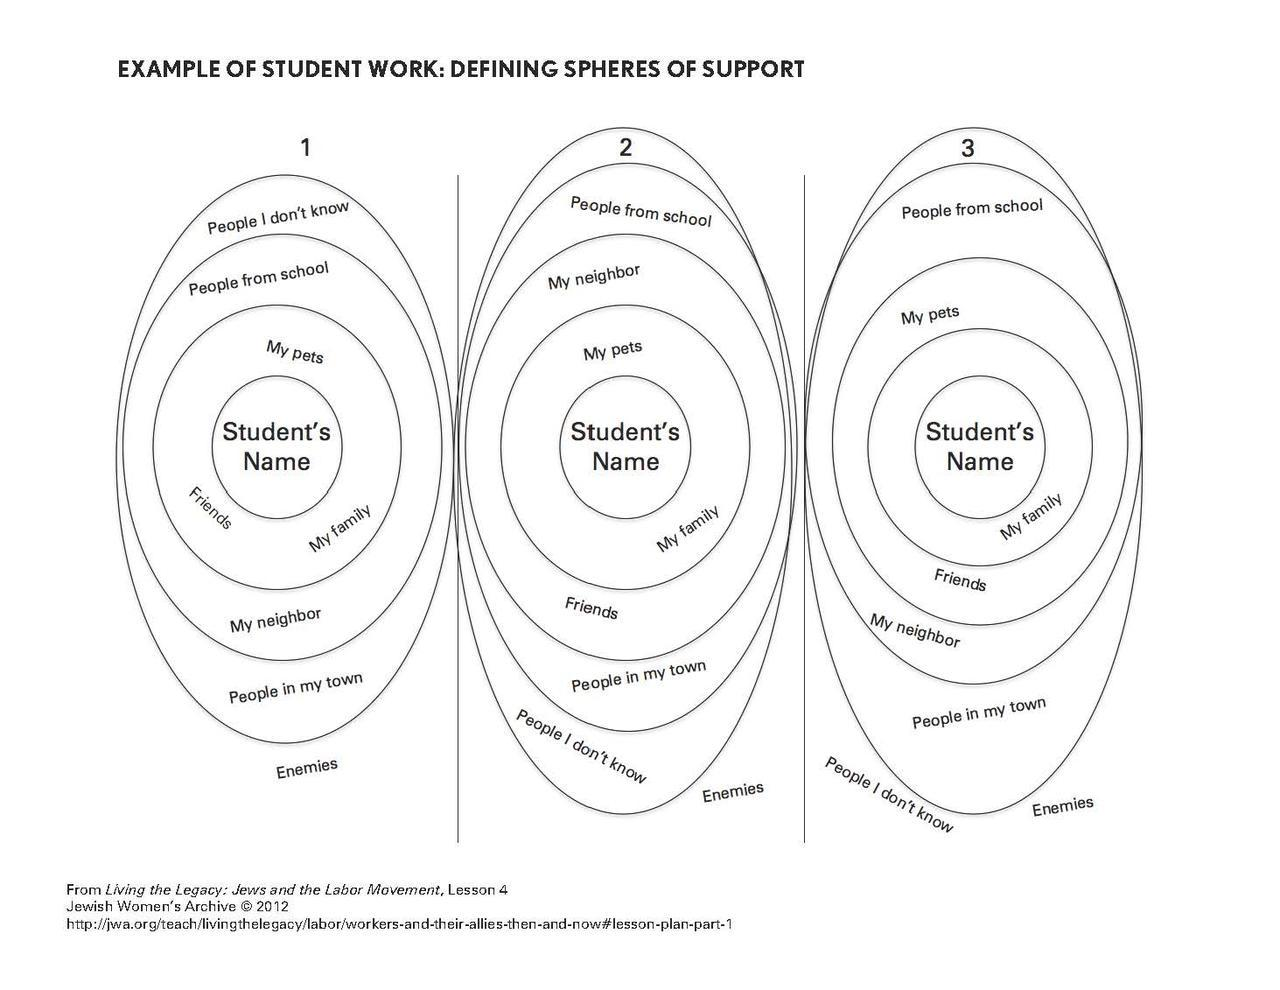 Spheres of Support - Example